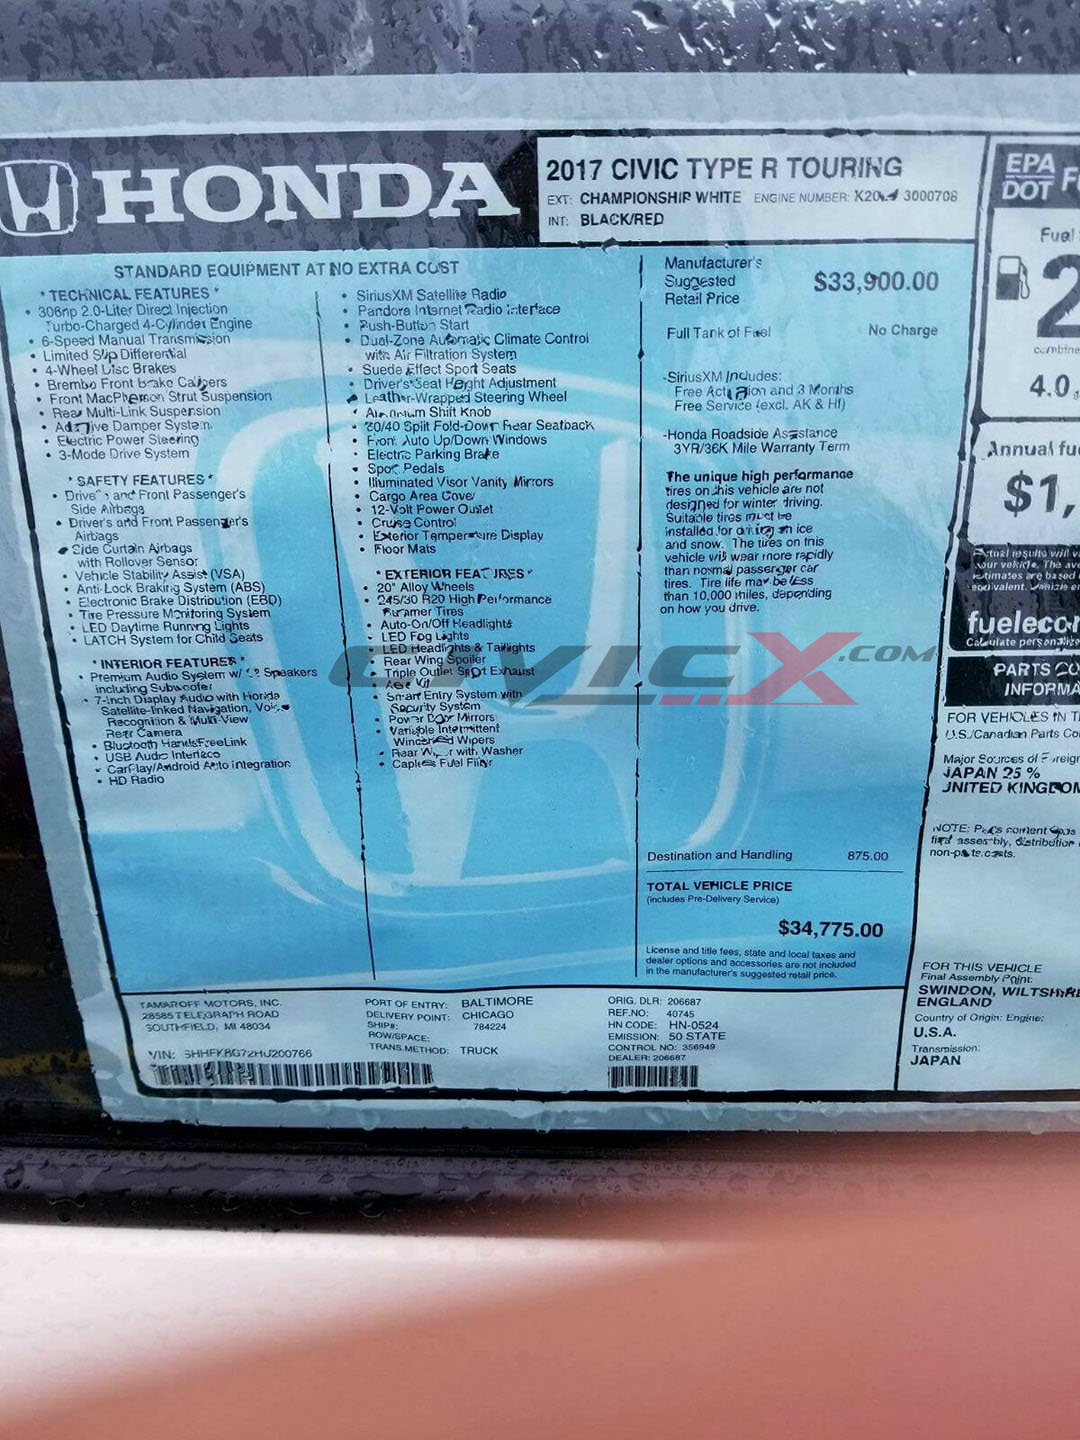 Window Sticker Suggests 2017 Honda Civic Type R Is Priced ...